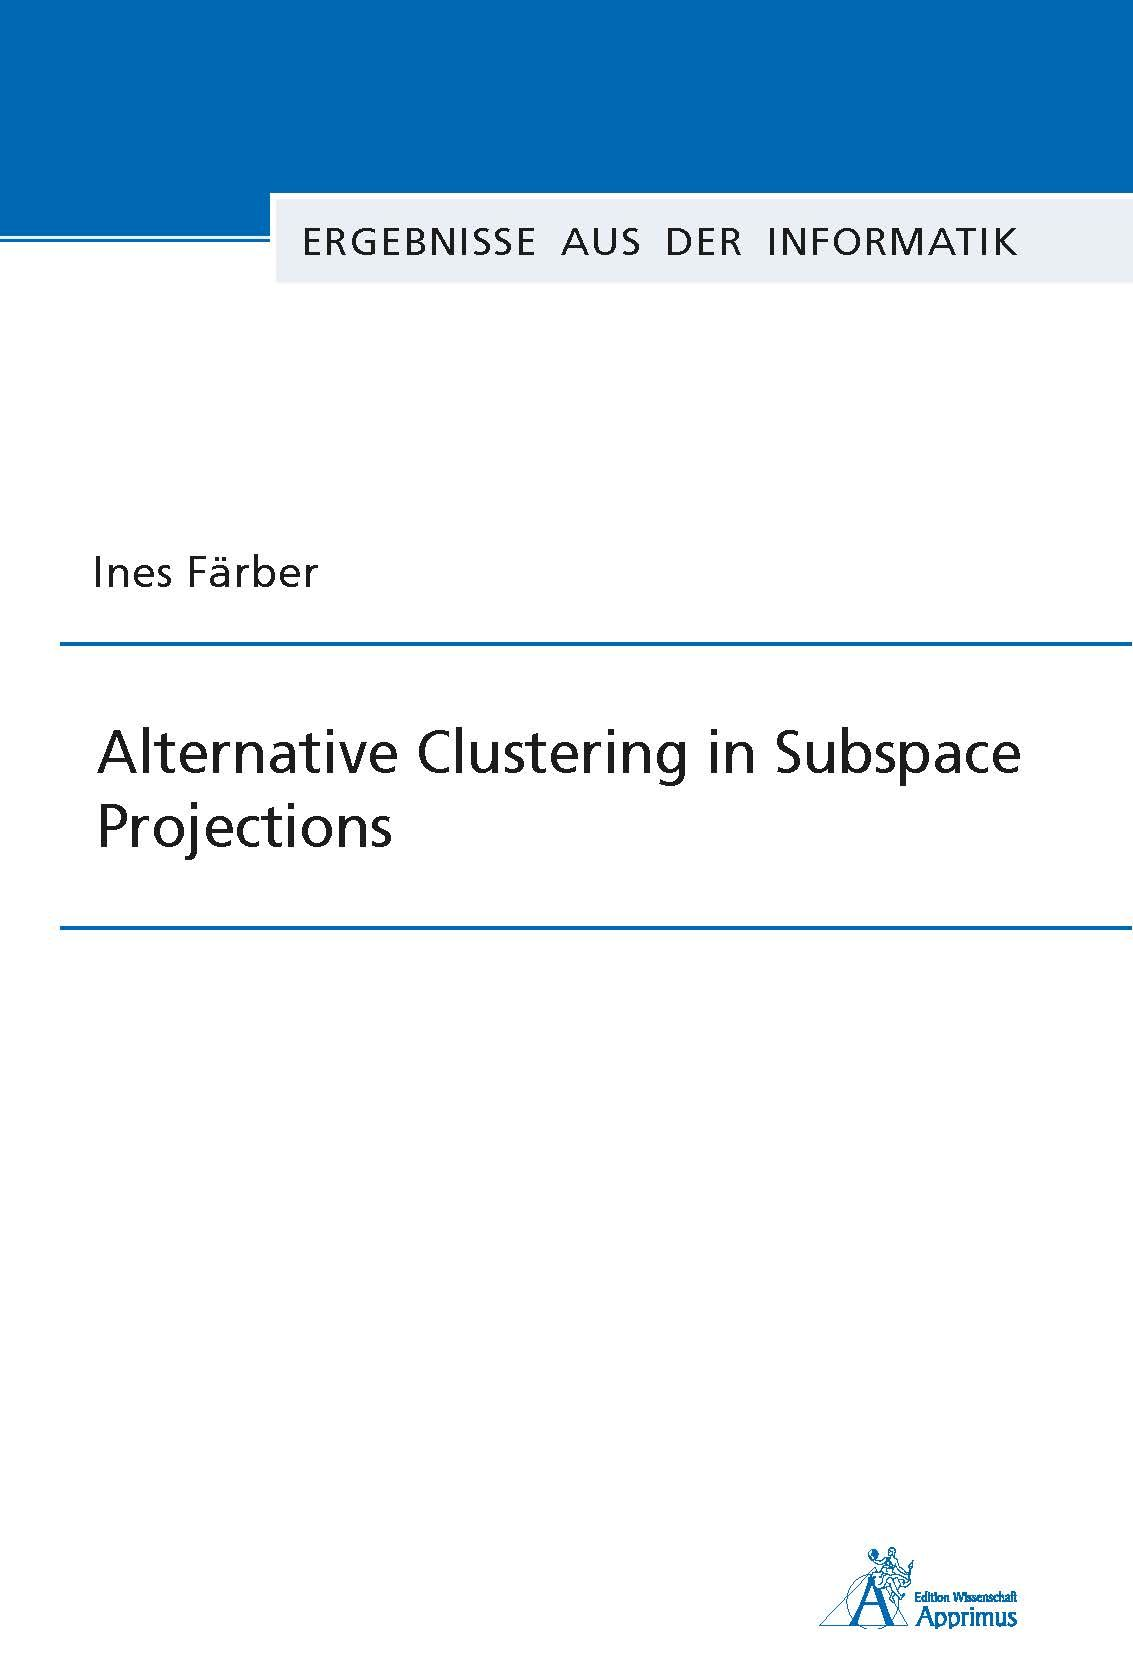 Alternative Clustering in Subspace Projections